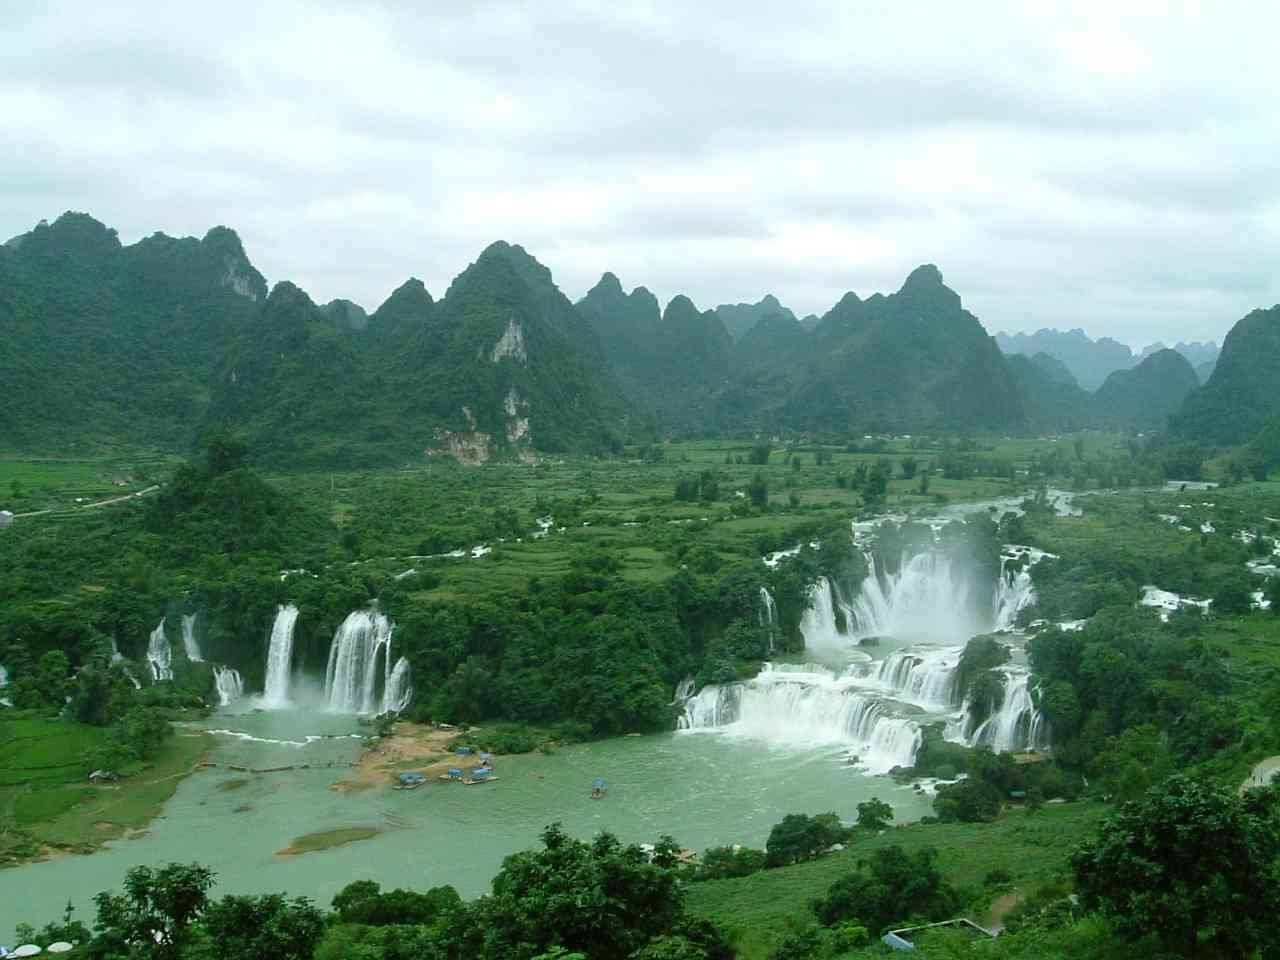 Nanning China  city images : Nanning Travel Tours, Nanning Guangxi China, Nanning Travel Packages